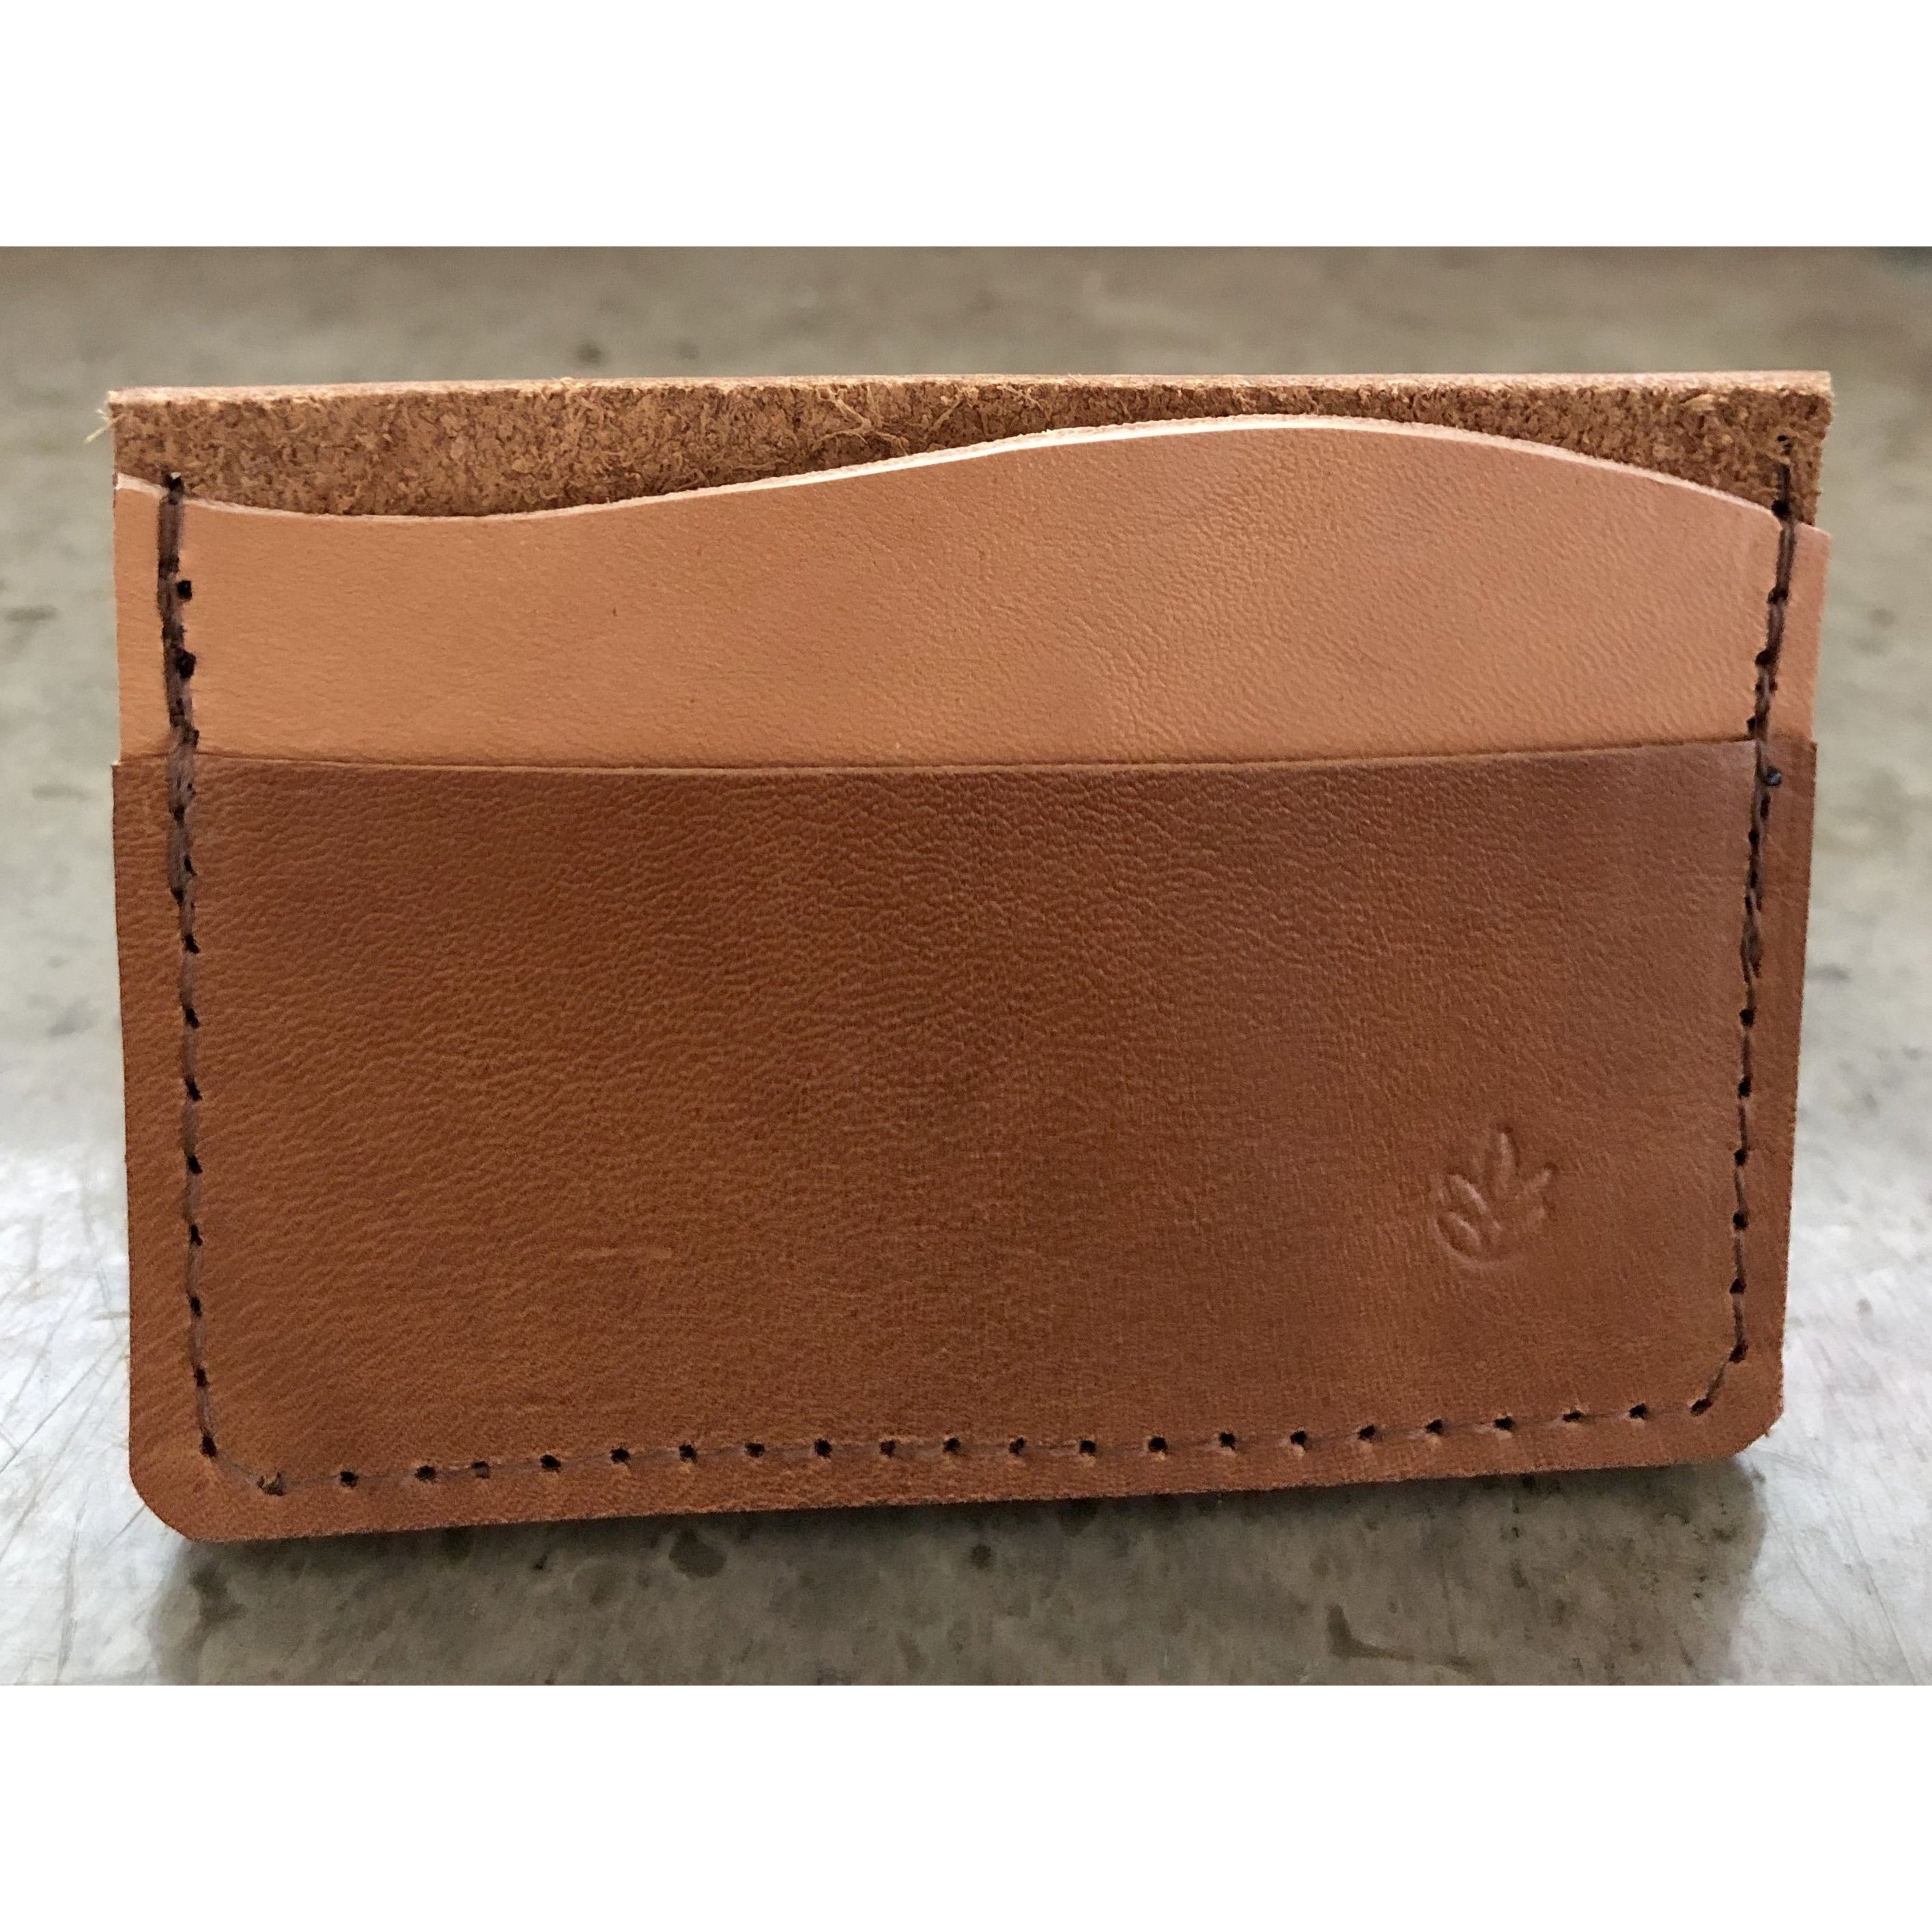 Minimalist 3 Pocket Leather Wallet in brown and light tan